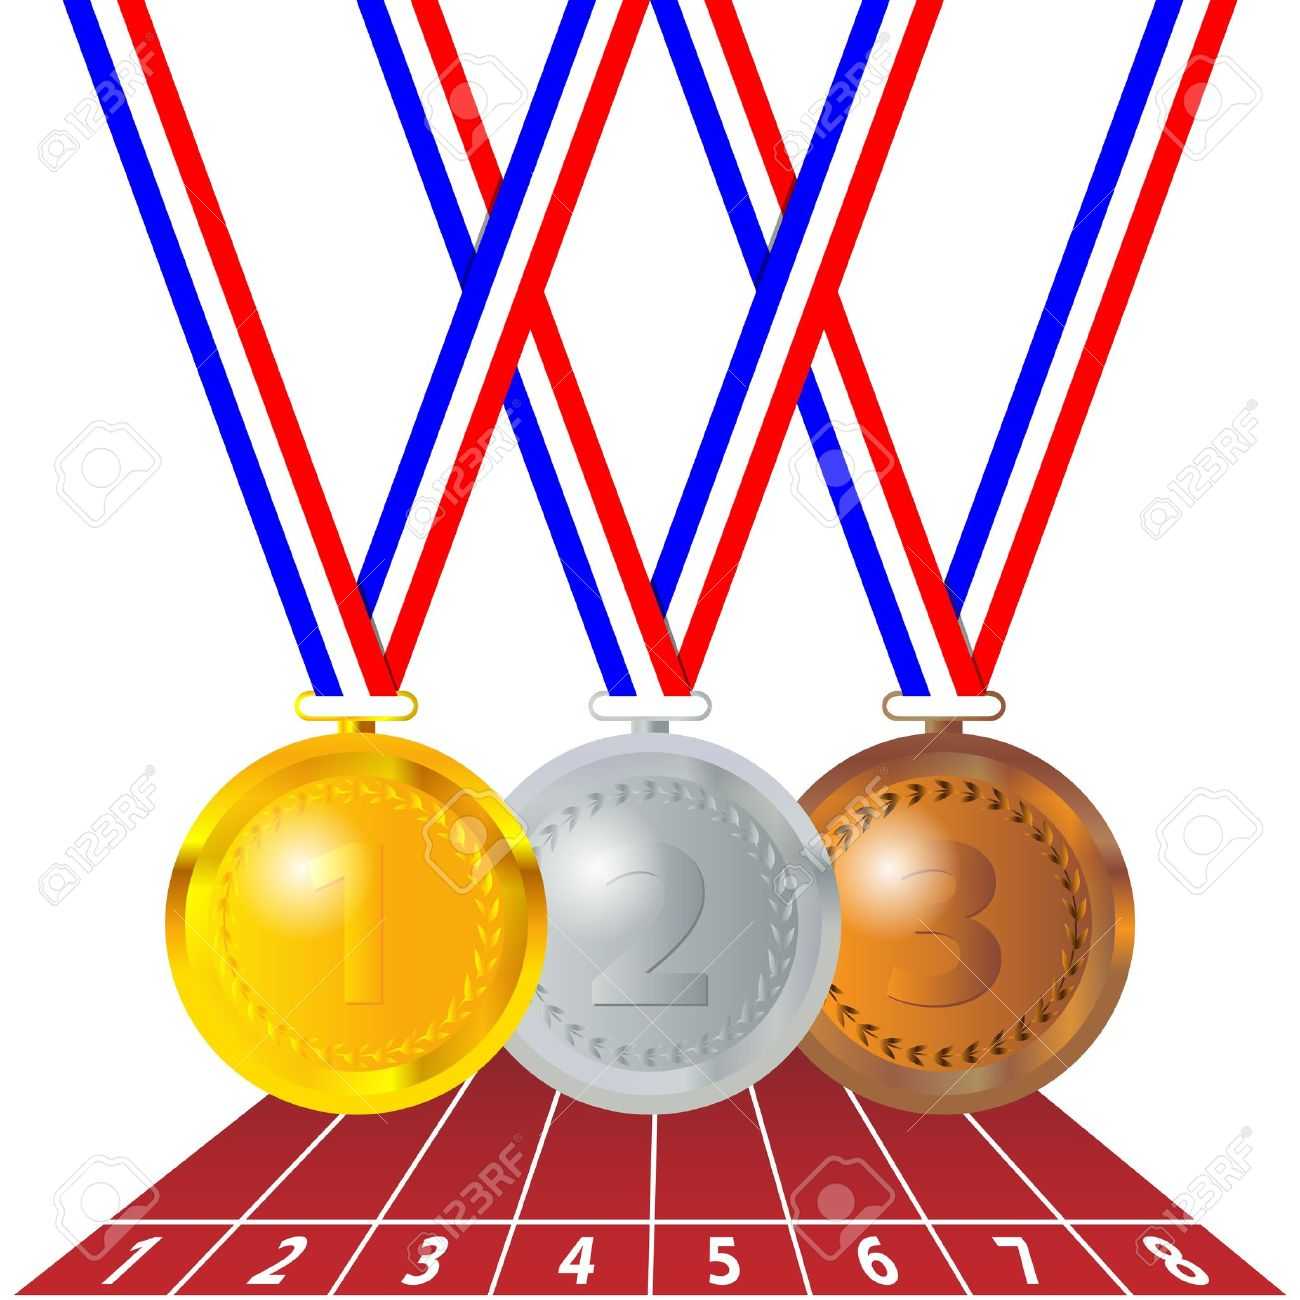 Winning clipart sports competition Olympics%20clipart Clipart Clip Panda Olympic